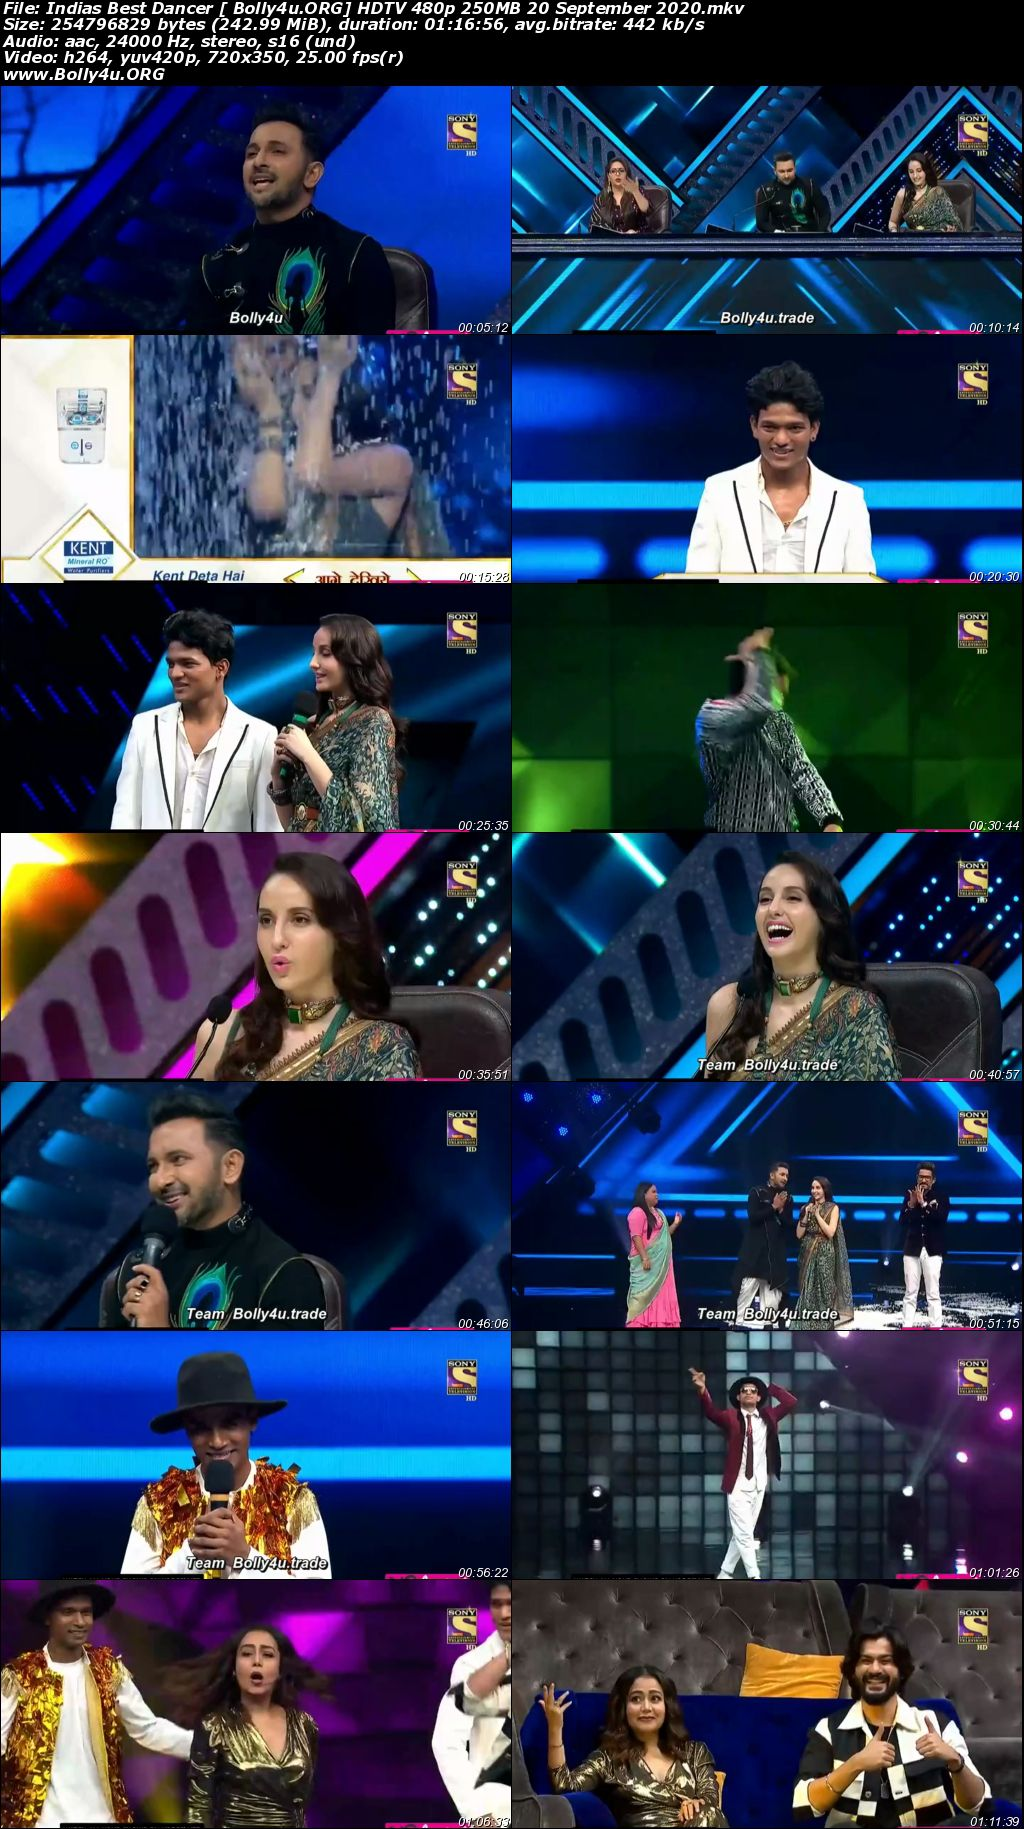 Indias Best Dancer HDTV 480p 250MB 20 September 2020 Download